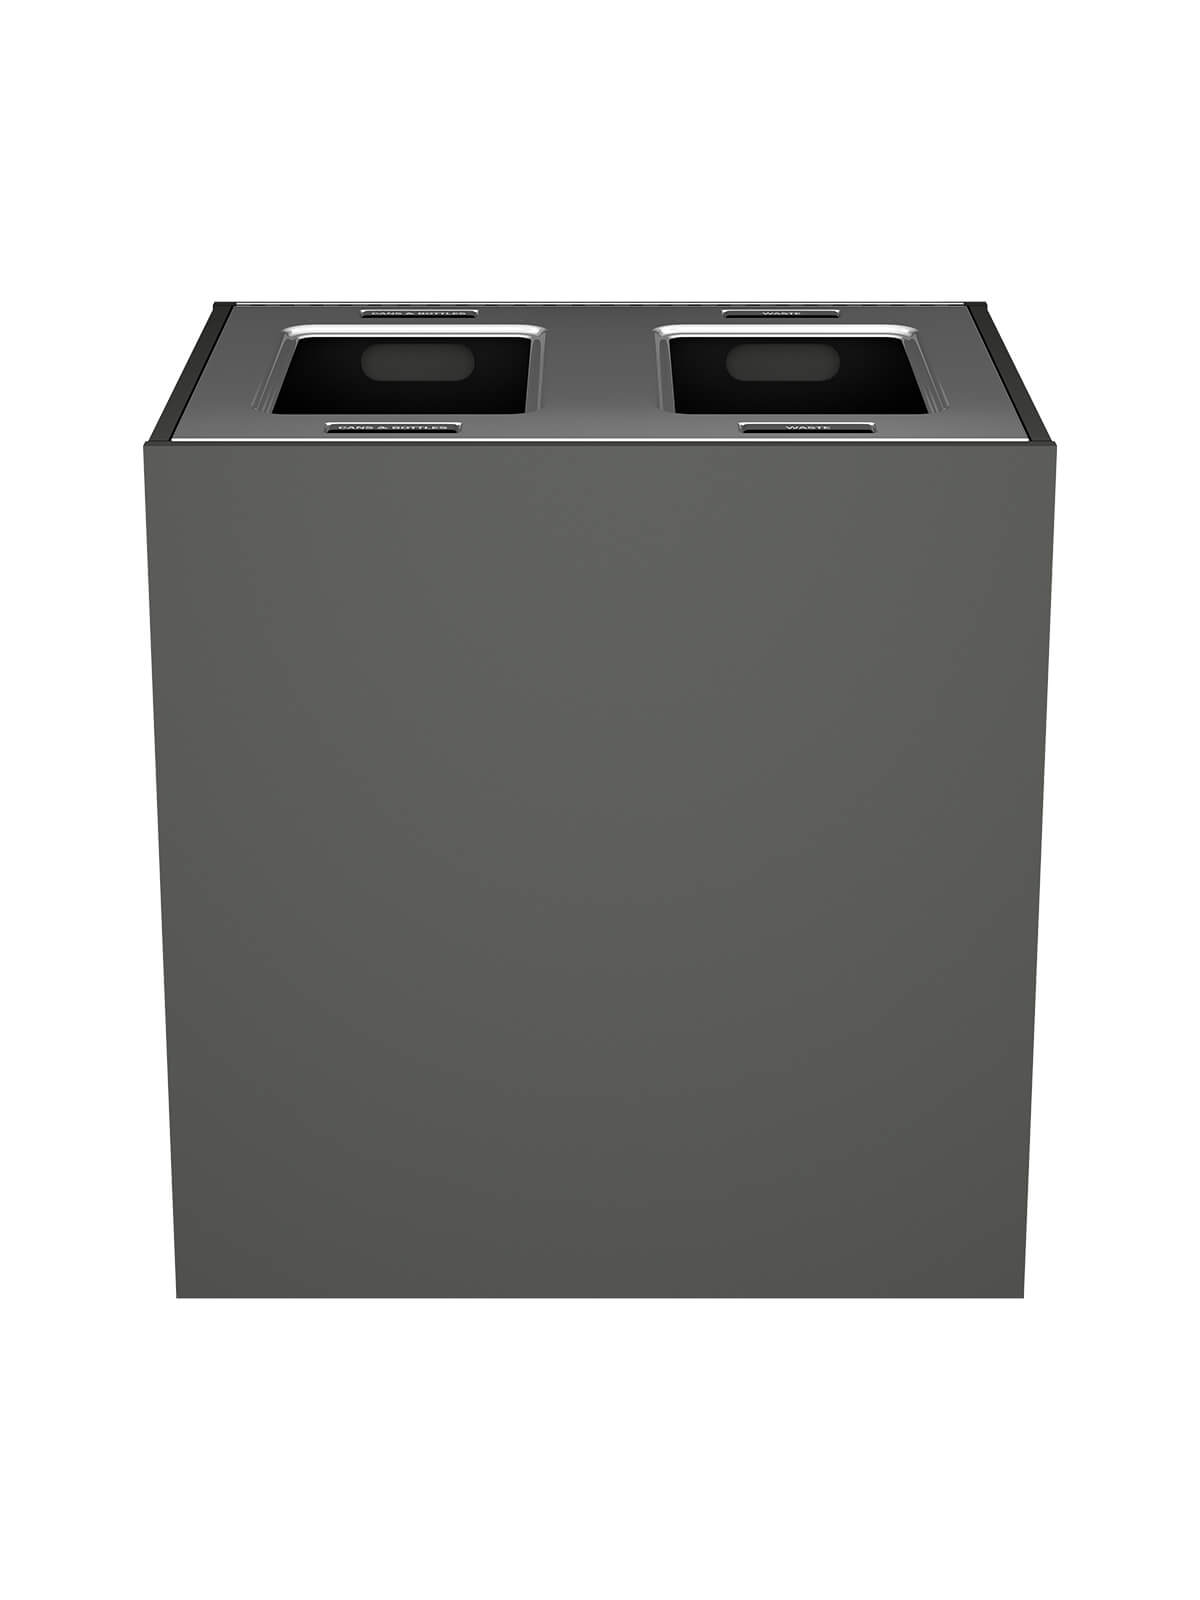 ARISTATA - Double - Xl - Cans & Bottles-Waste - Full - Slate-Stainless Steel